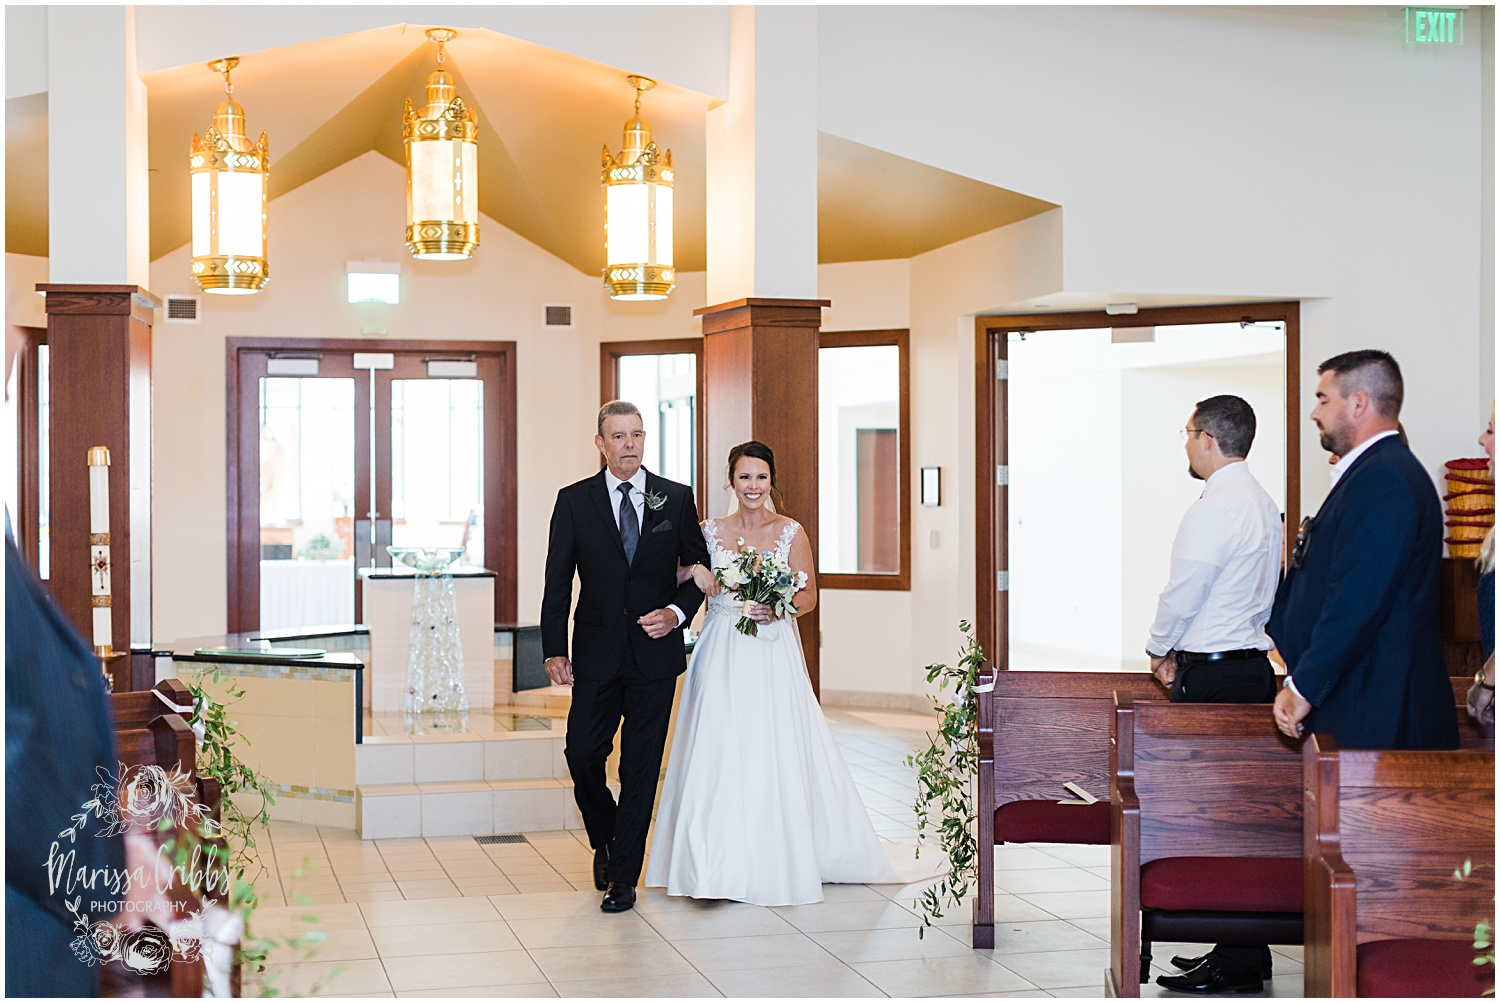 KELLY & MITCH MARRIED BLOG | MARISSA CRIBBS PHOTOGRAPHY | THE EVERLY EVENT SPACE_8832.jpg